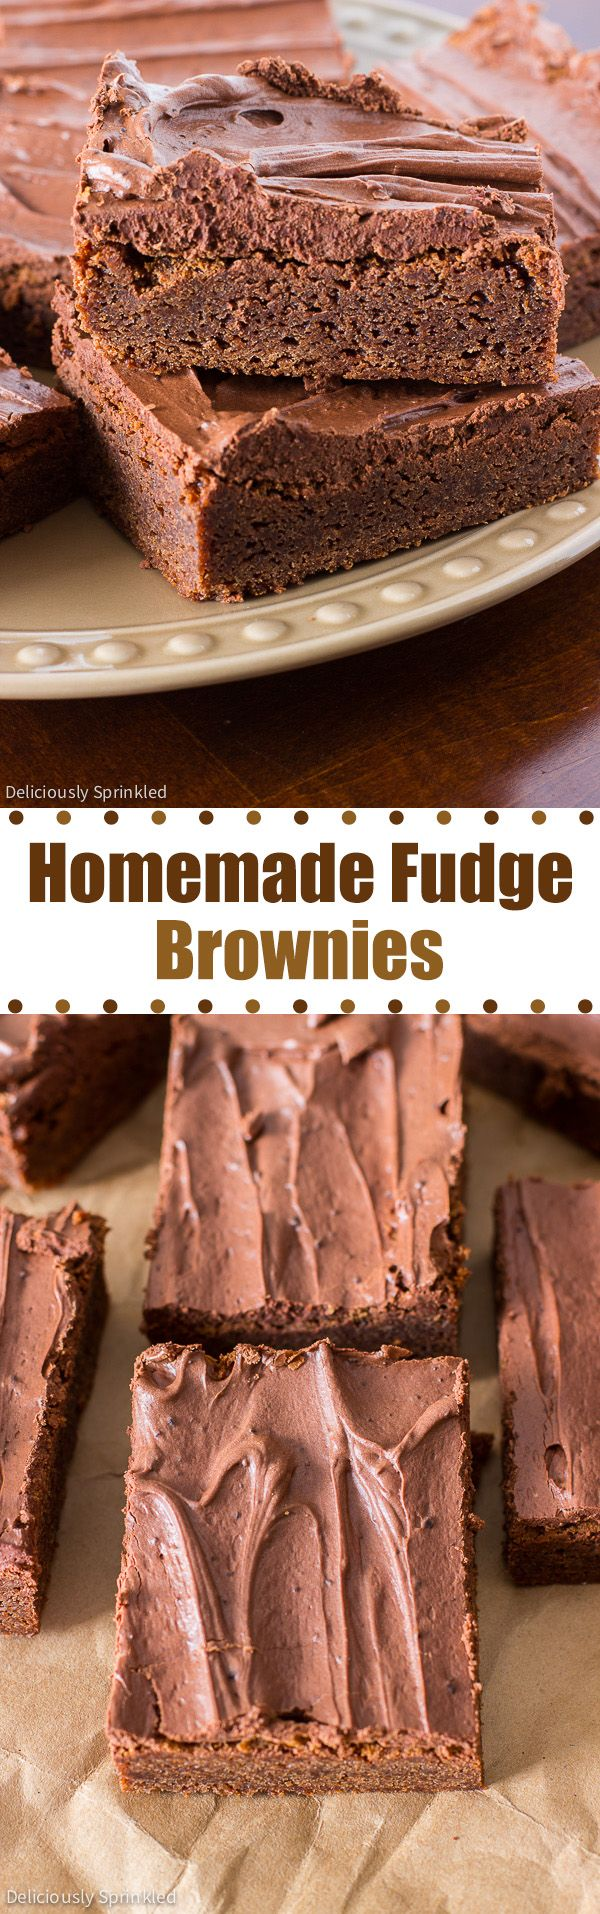 The BEST Homemade Fudgy Brownies with Milk Chocolate Frosting!